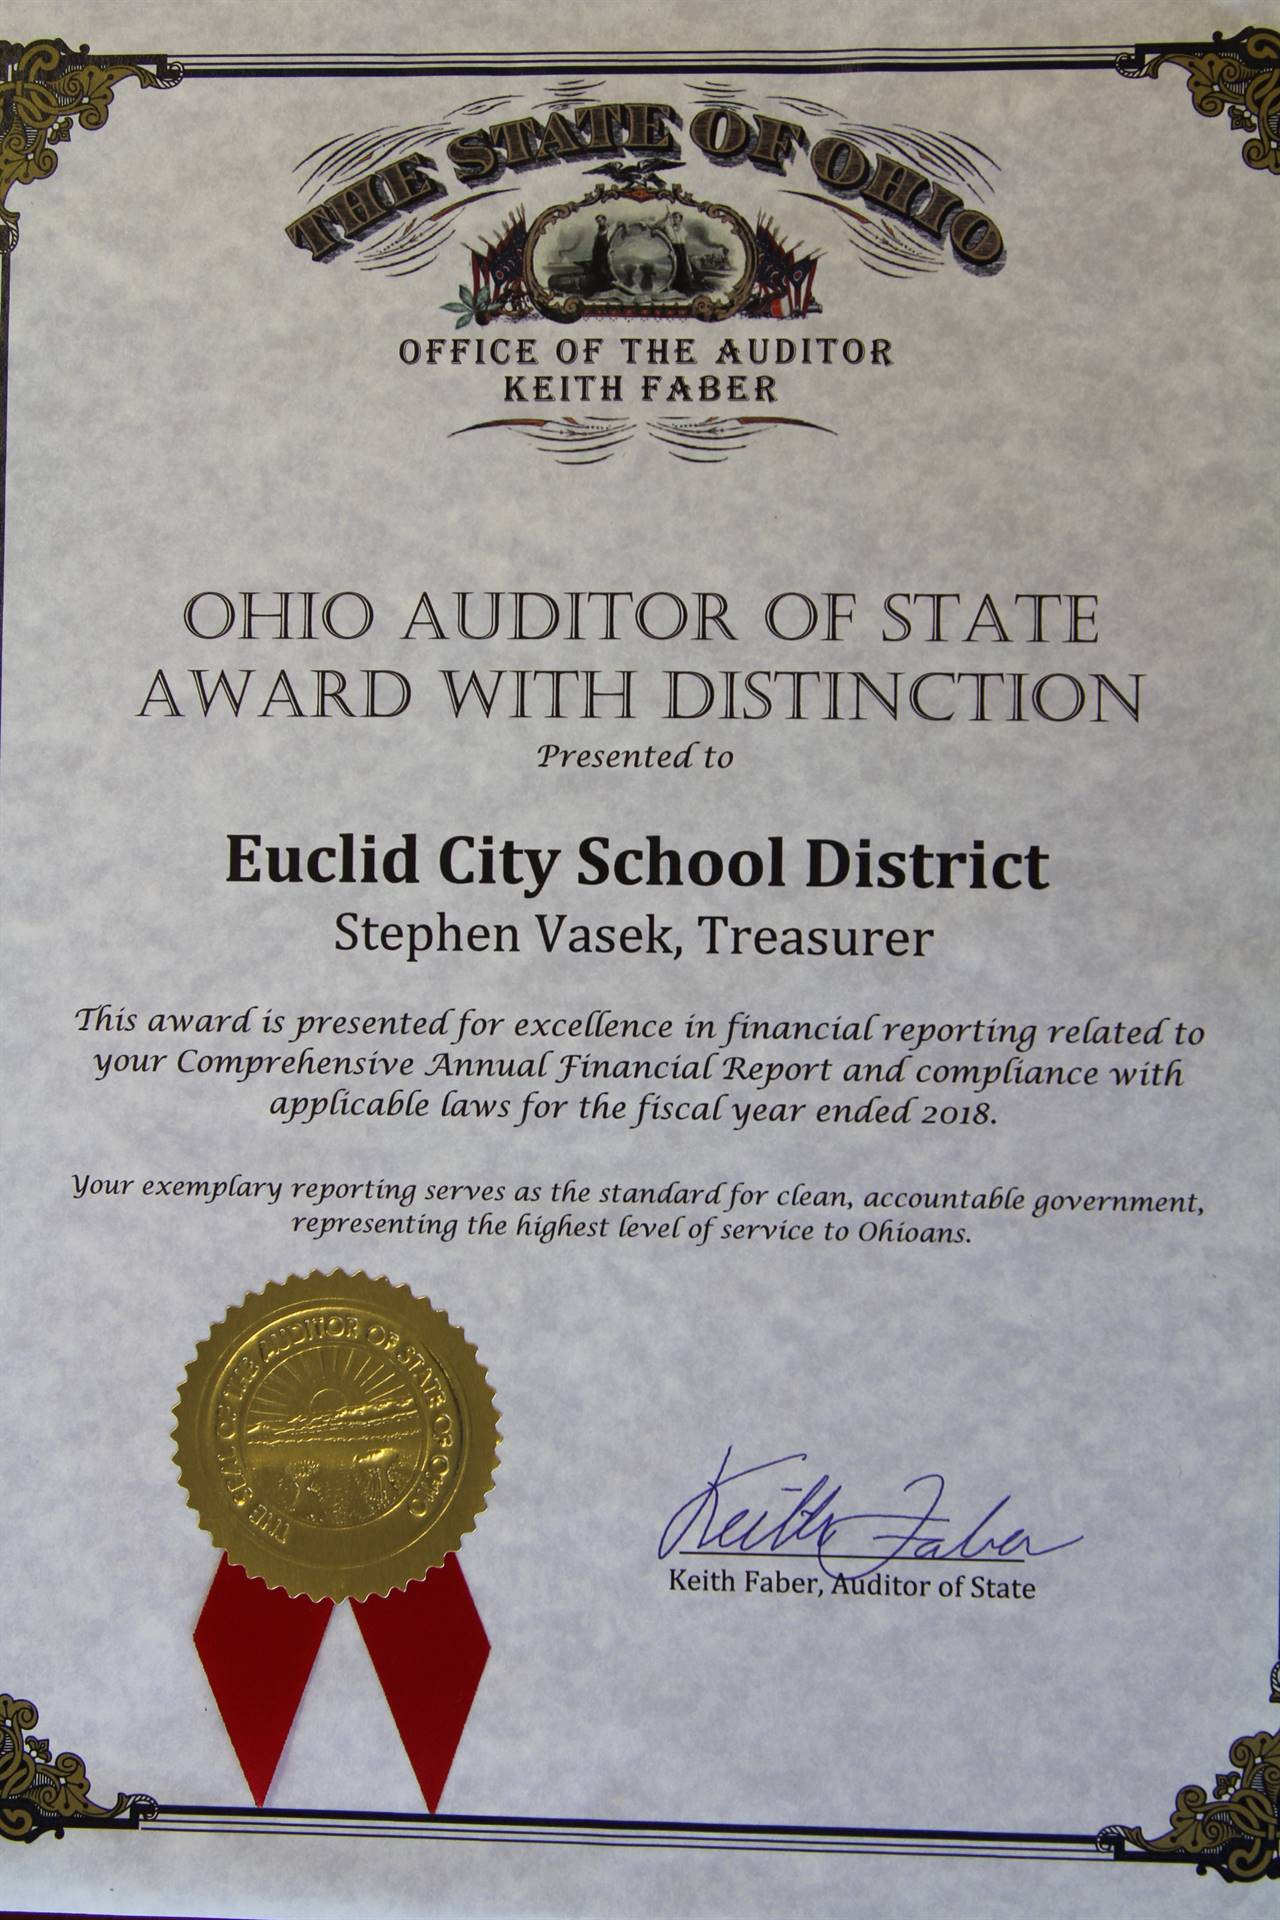 2018-19 Ohio Auditor of State Award with Distinction